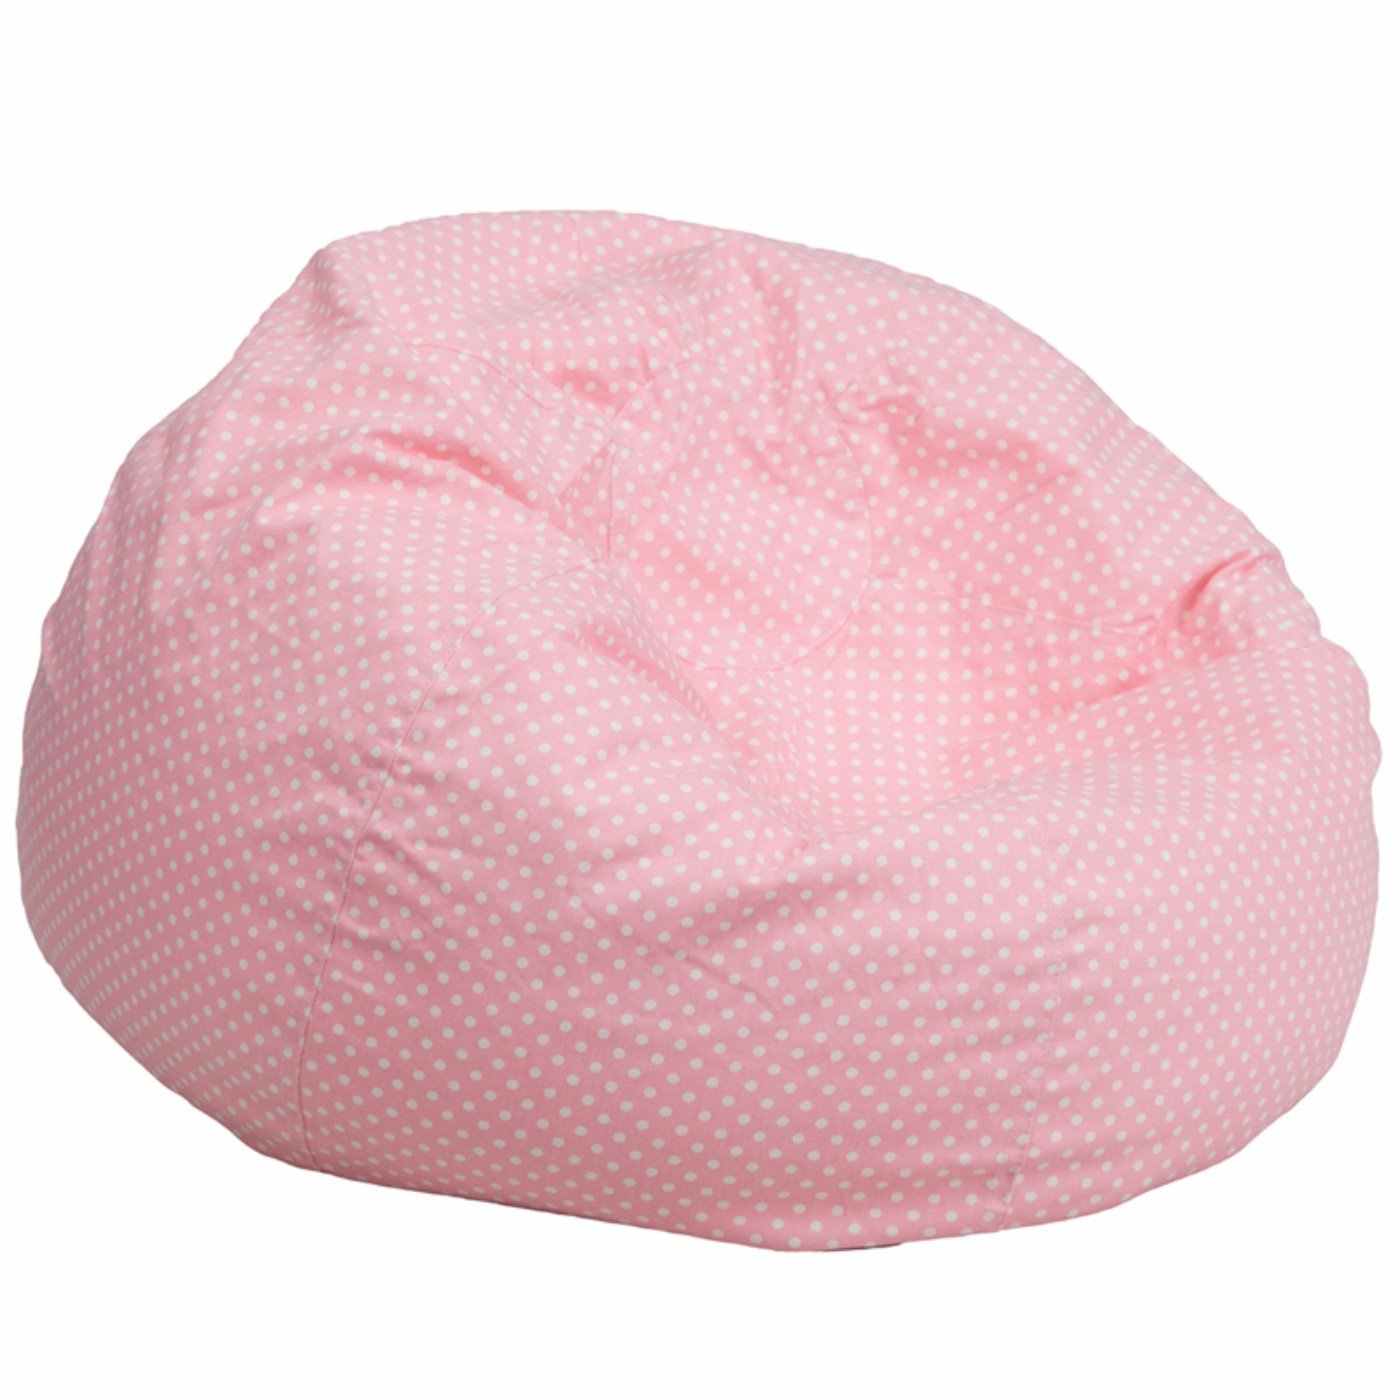 Winston Direct Kids Series Oversized Polka Dot Bean Bag Chair - Pastel Pink by Winston Direct